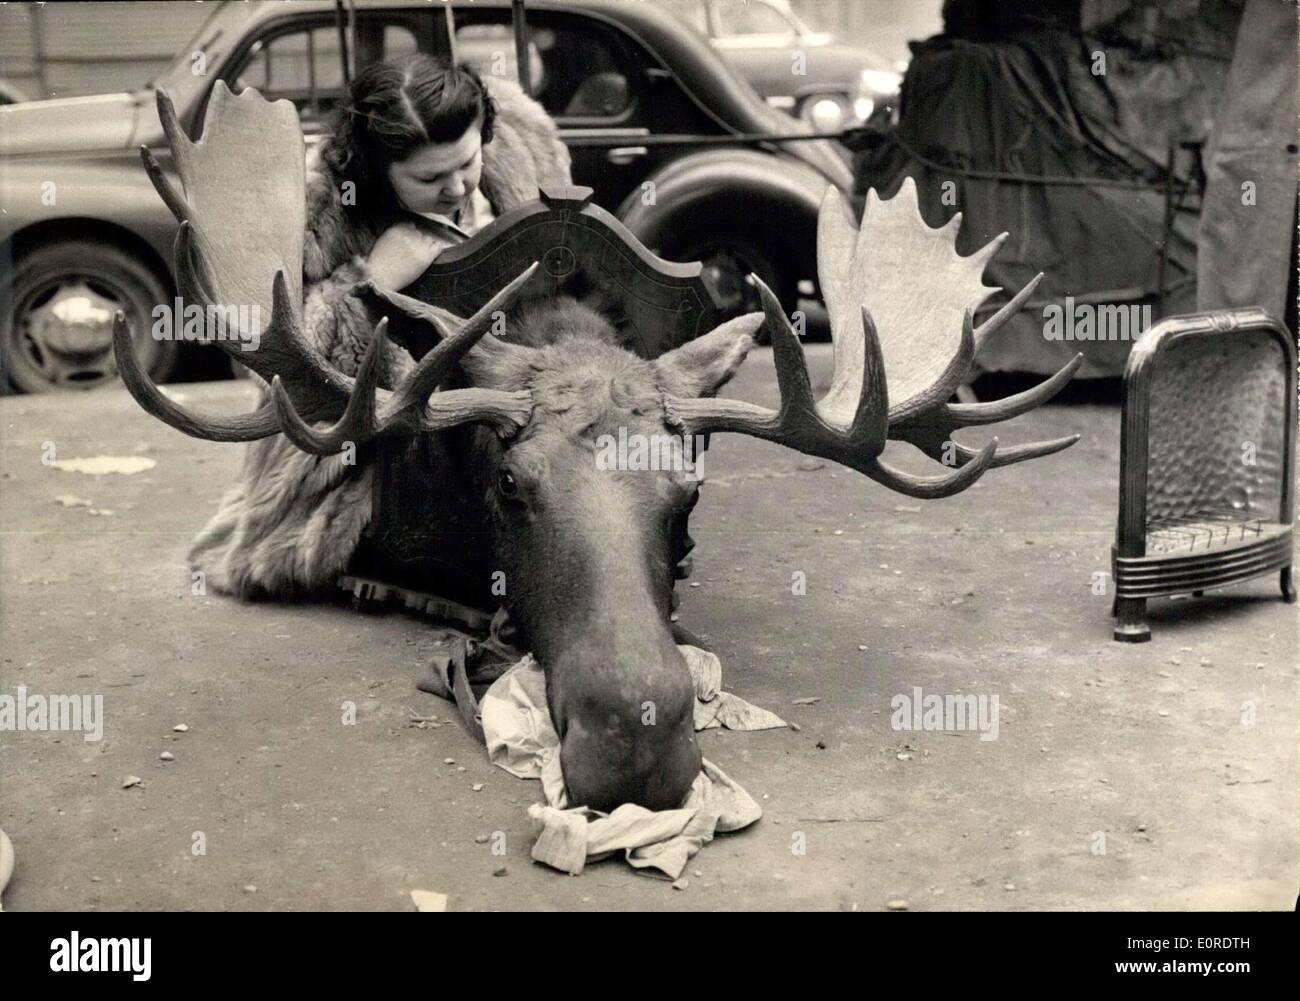 Mar. 20, 1959 - Jung Fair opens in Paris. Photo shows a stuffed head of a reindeer, one of the ''Bargains'' to be seen at the Annual Junk pair held during the easter holidays in Paris. - Stock Image